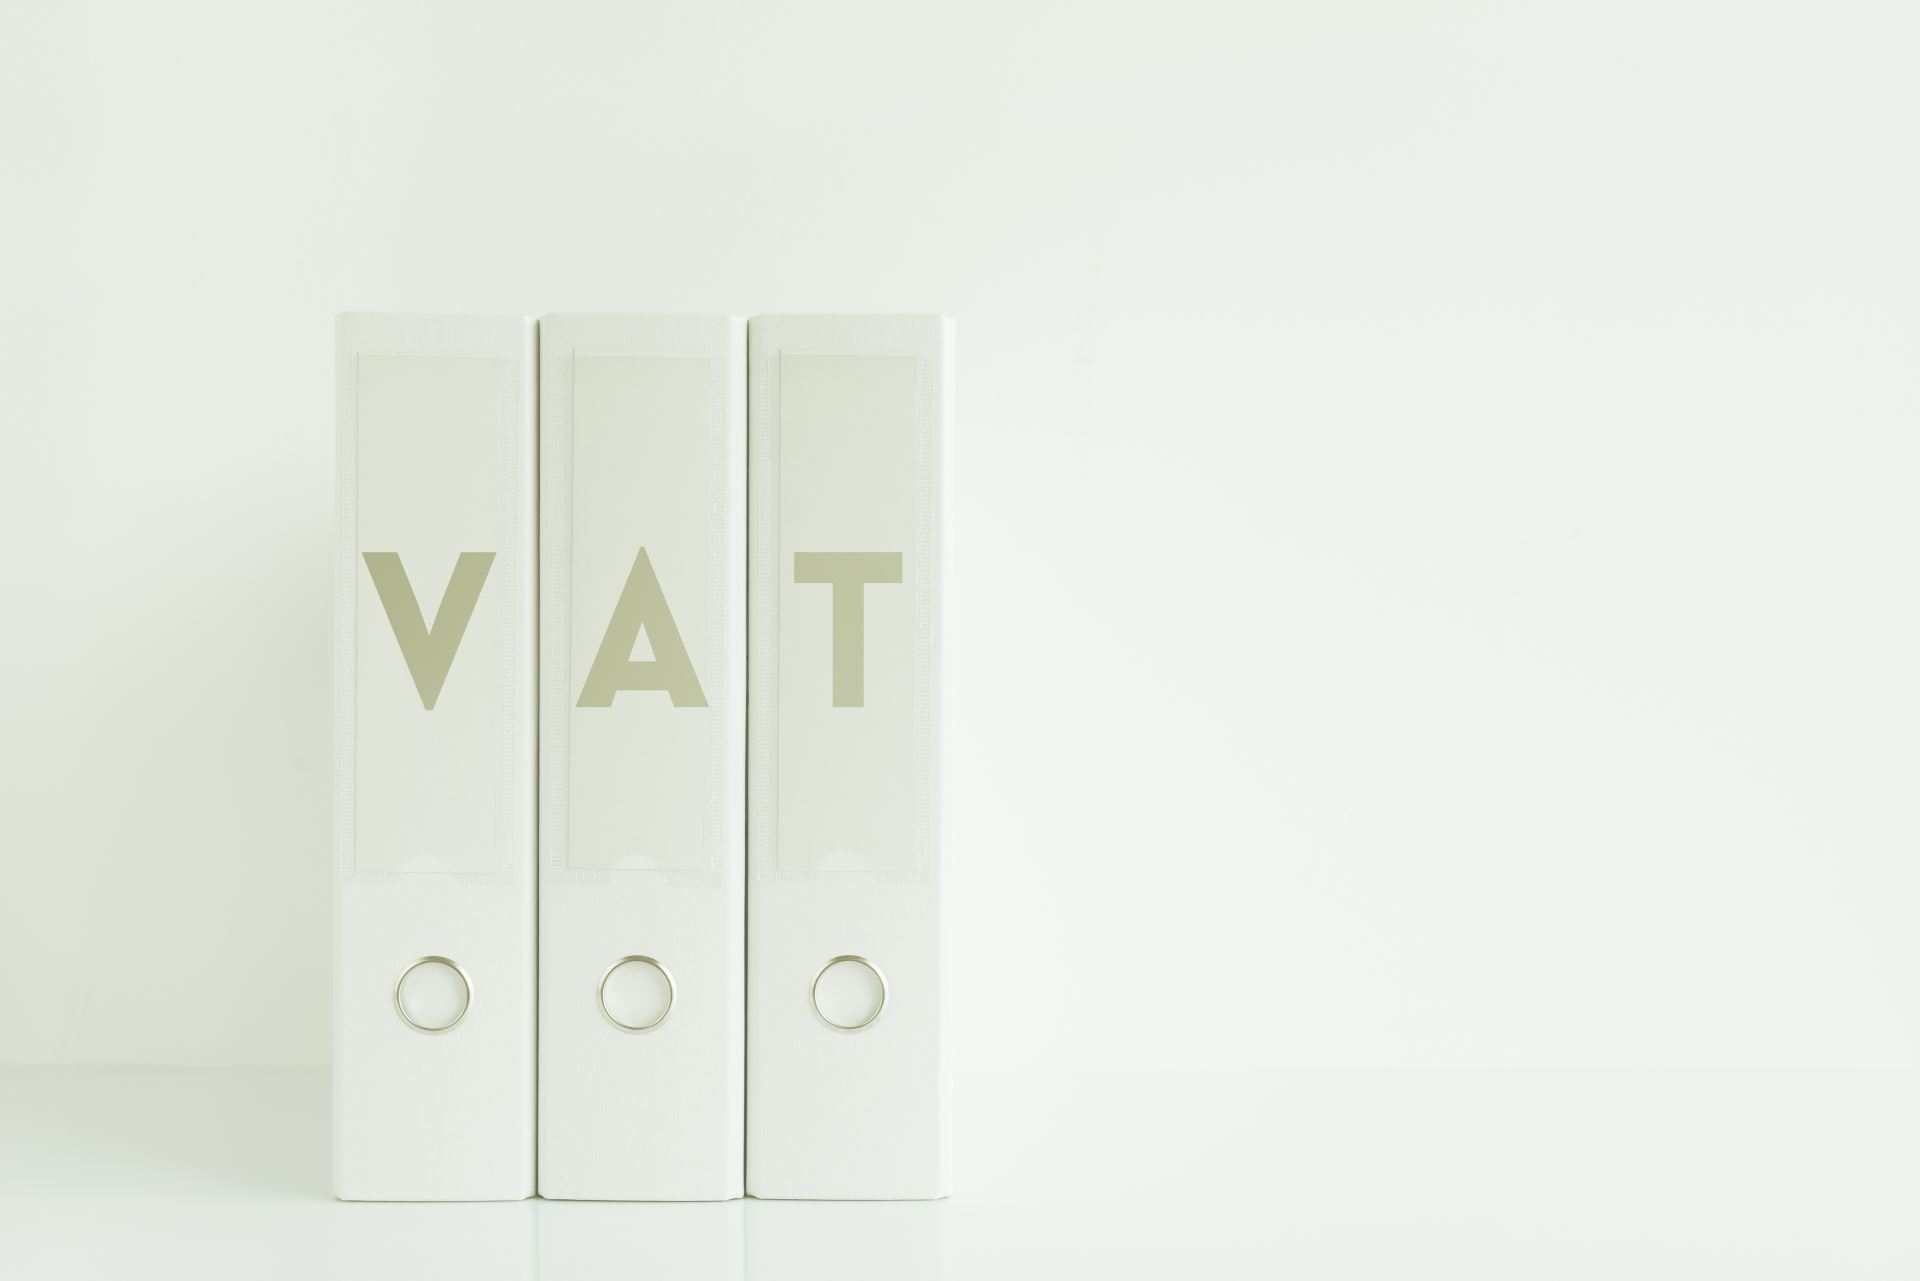 Value-added tax and taxation VAT